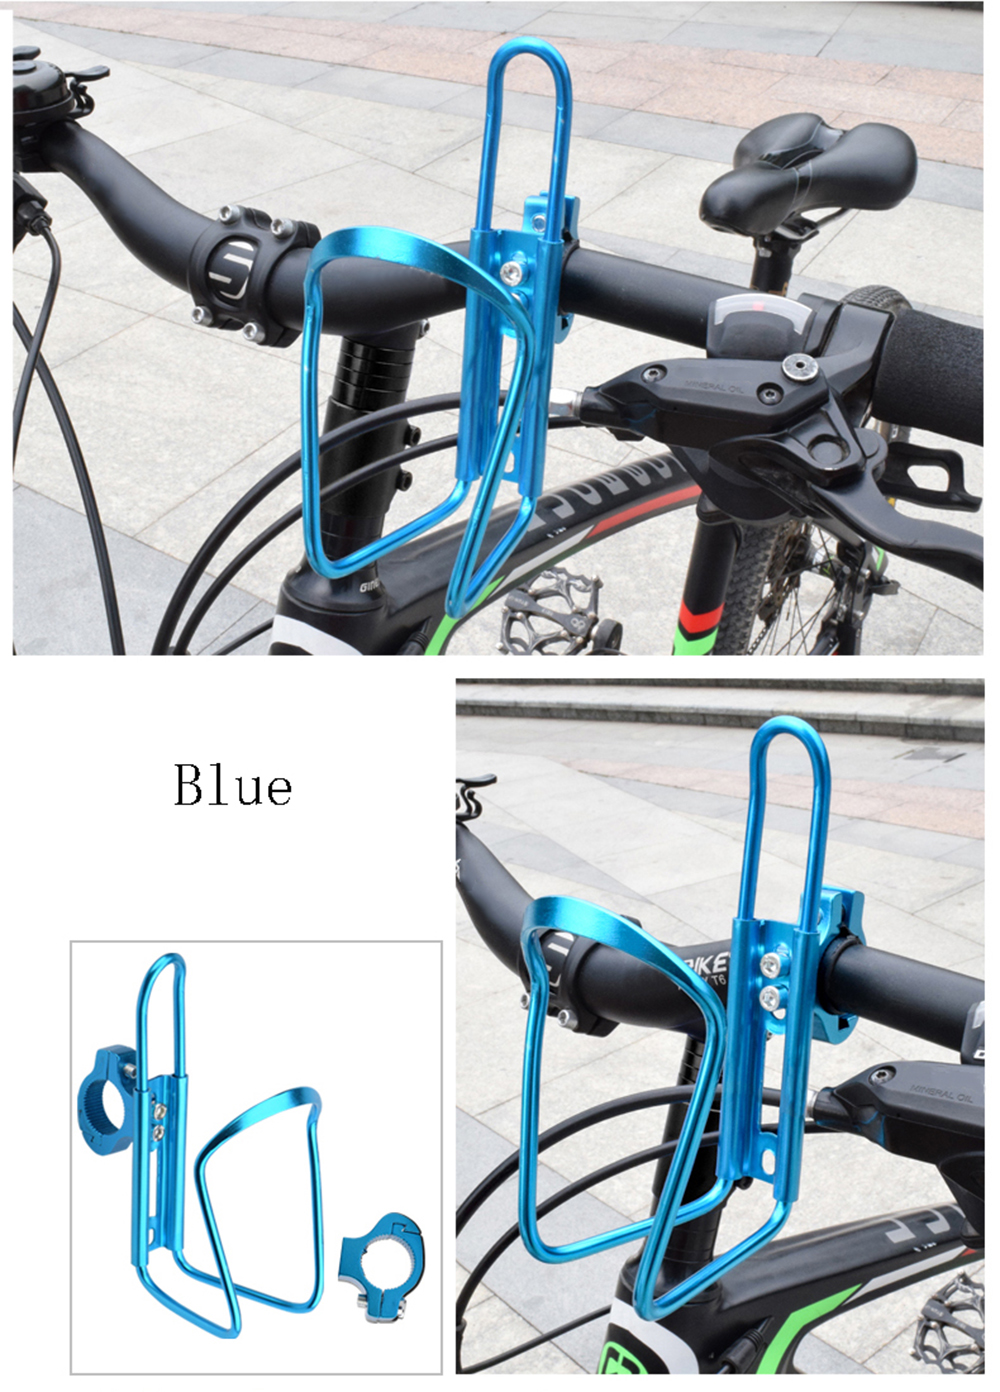 Dropship 1pc Aluminum Mountain Bicycle Double Water Bottle Holder Cage Rack Cycling Drinks Holder Outdoor Riding Drink Holder 2